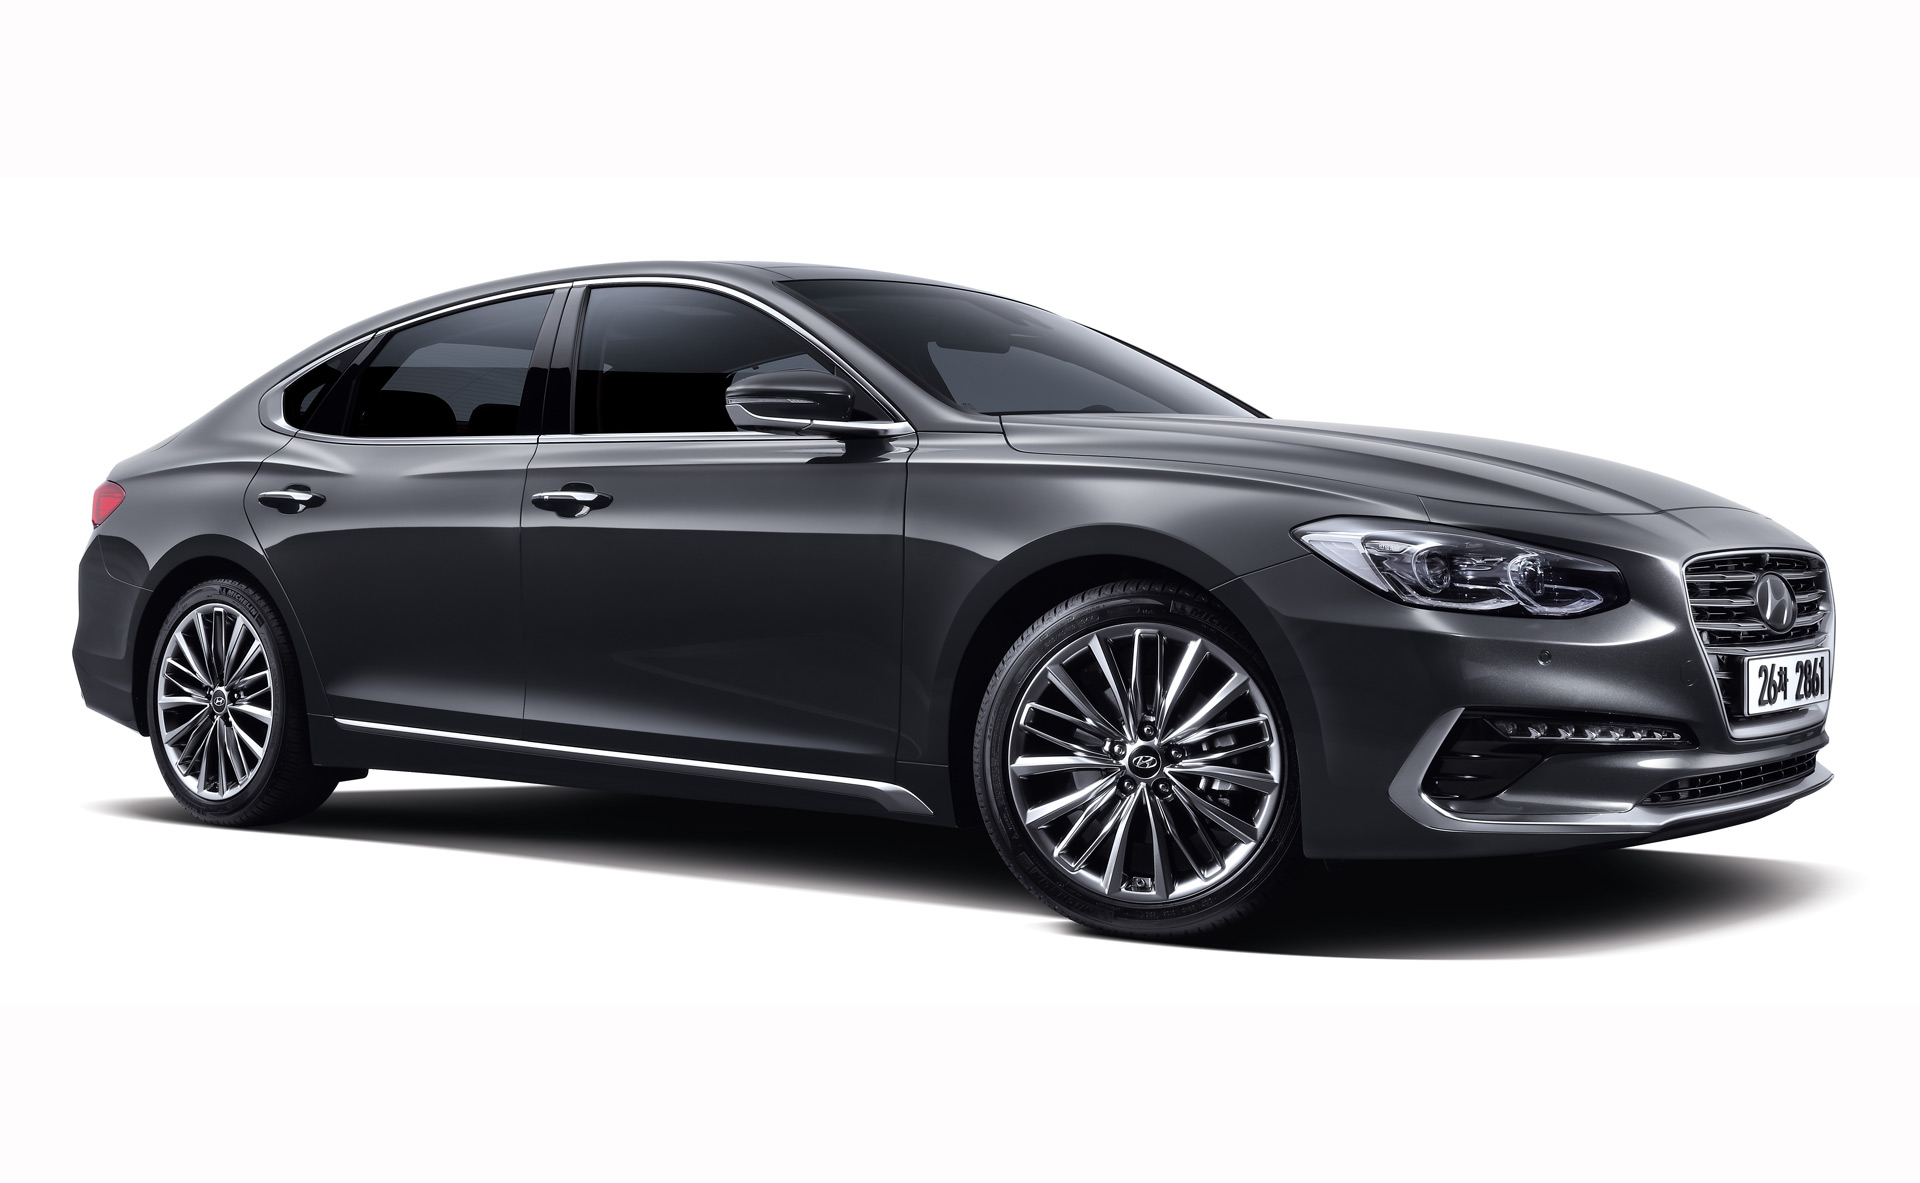 2018 hyundai azera price in india.  price in 2018 hyundai azera price in india 8